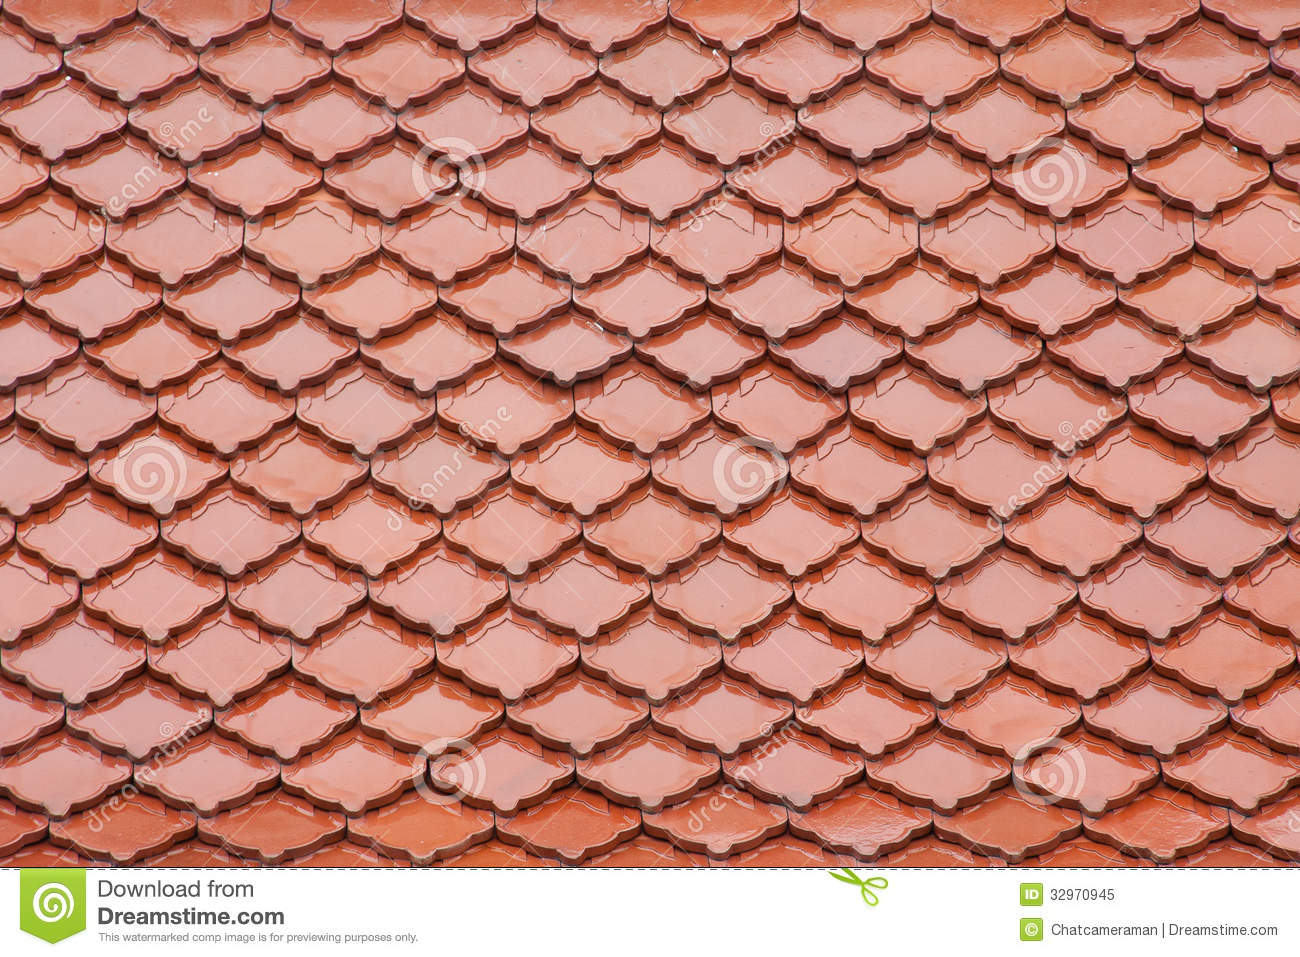 Red roof royalty free stock photo image 32970945 for Fish scale shingles